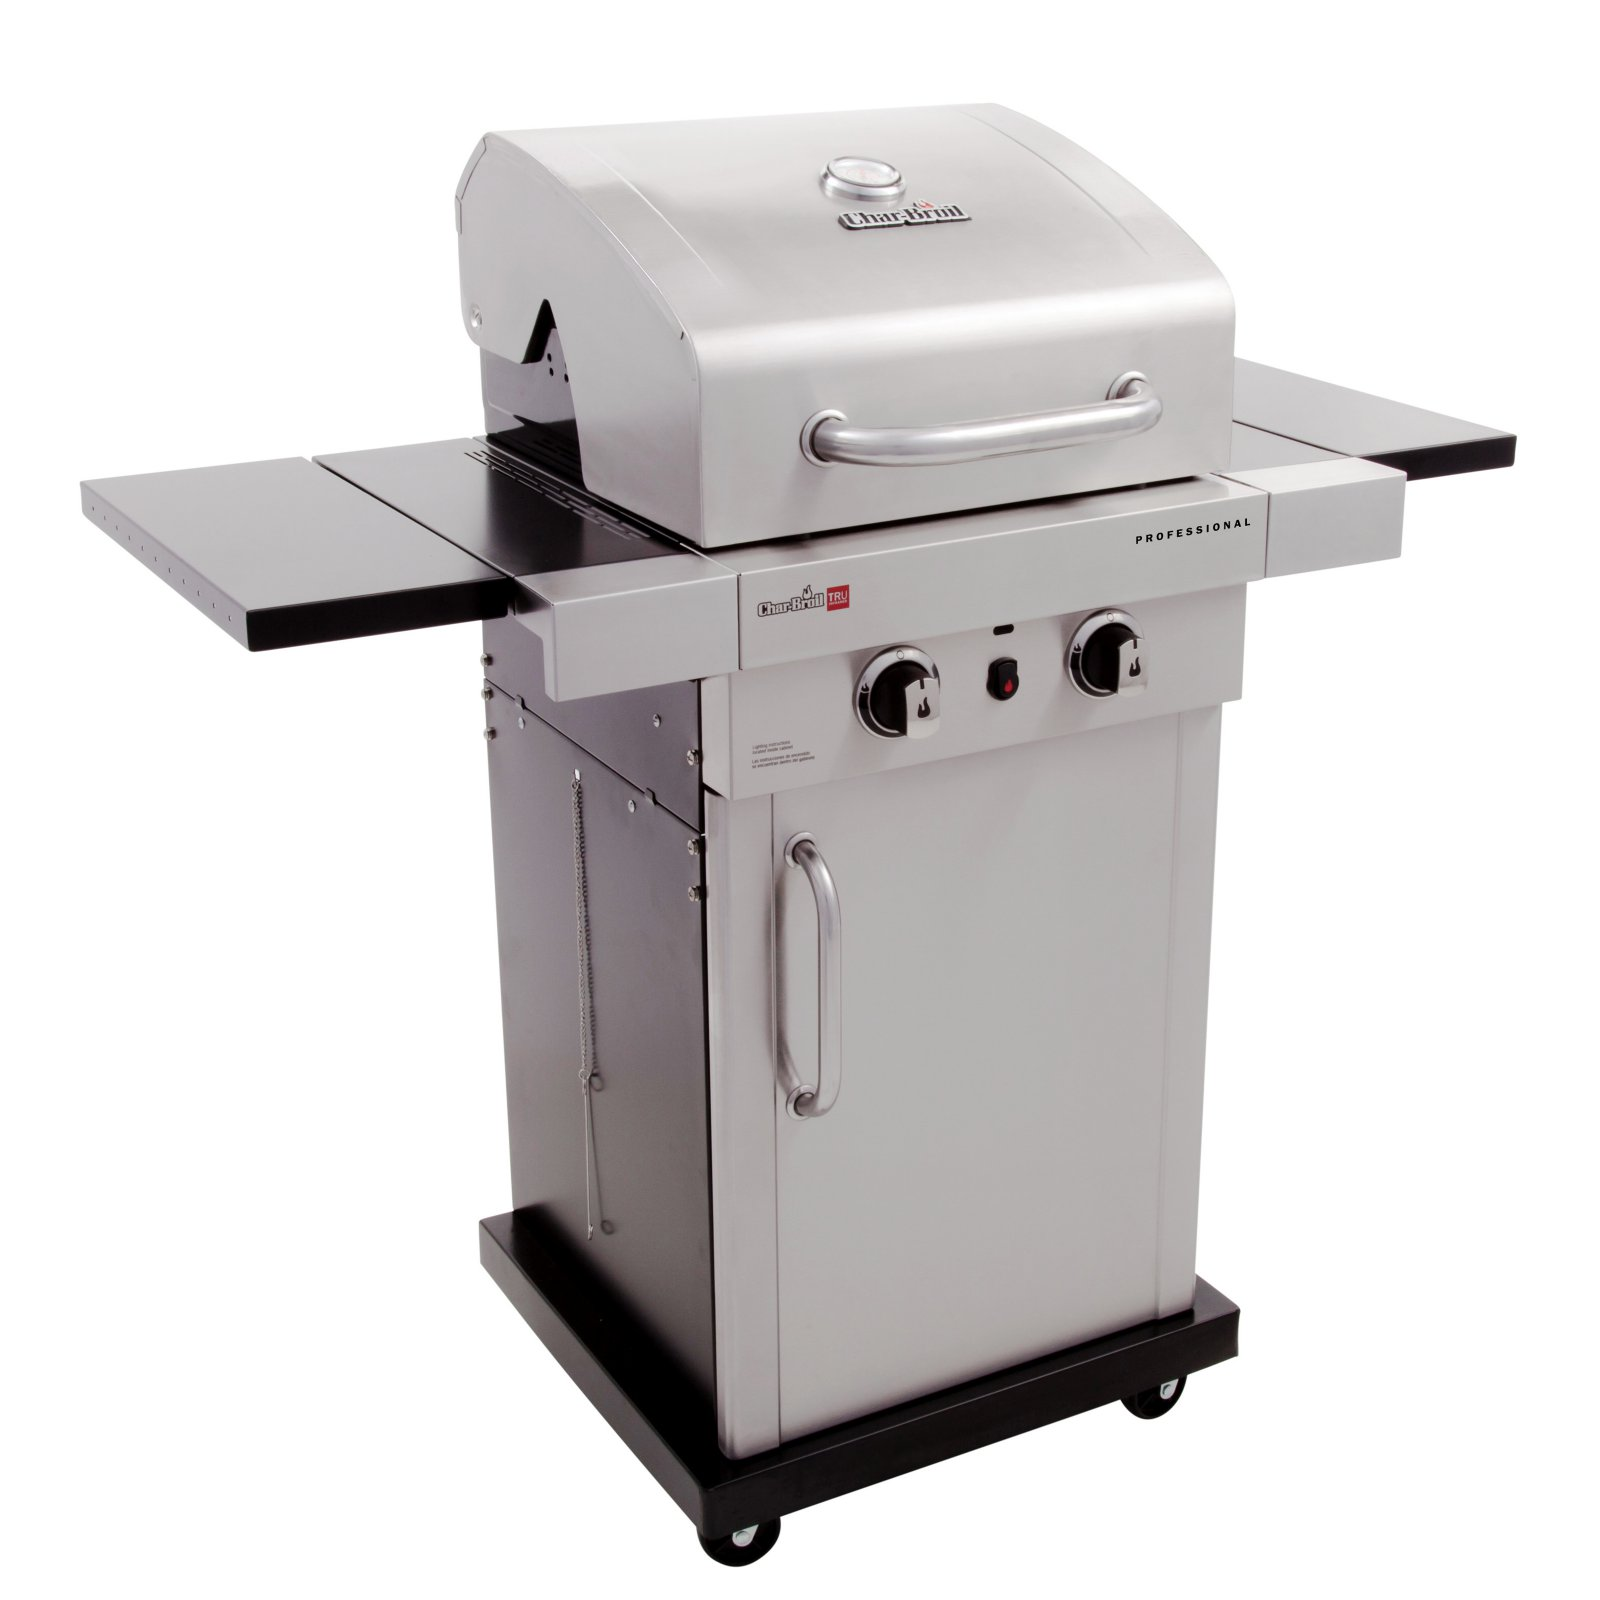 Char-Broil Professional Series TRU-Infrared 2-Burner Cabinet Gas Grill